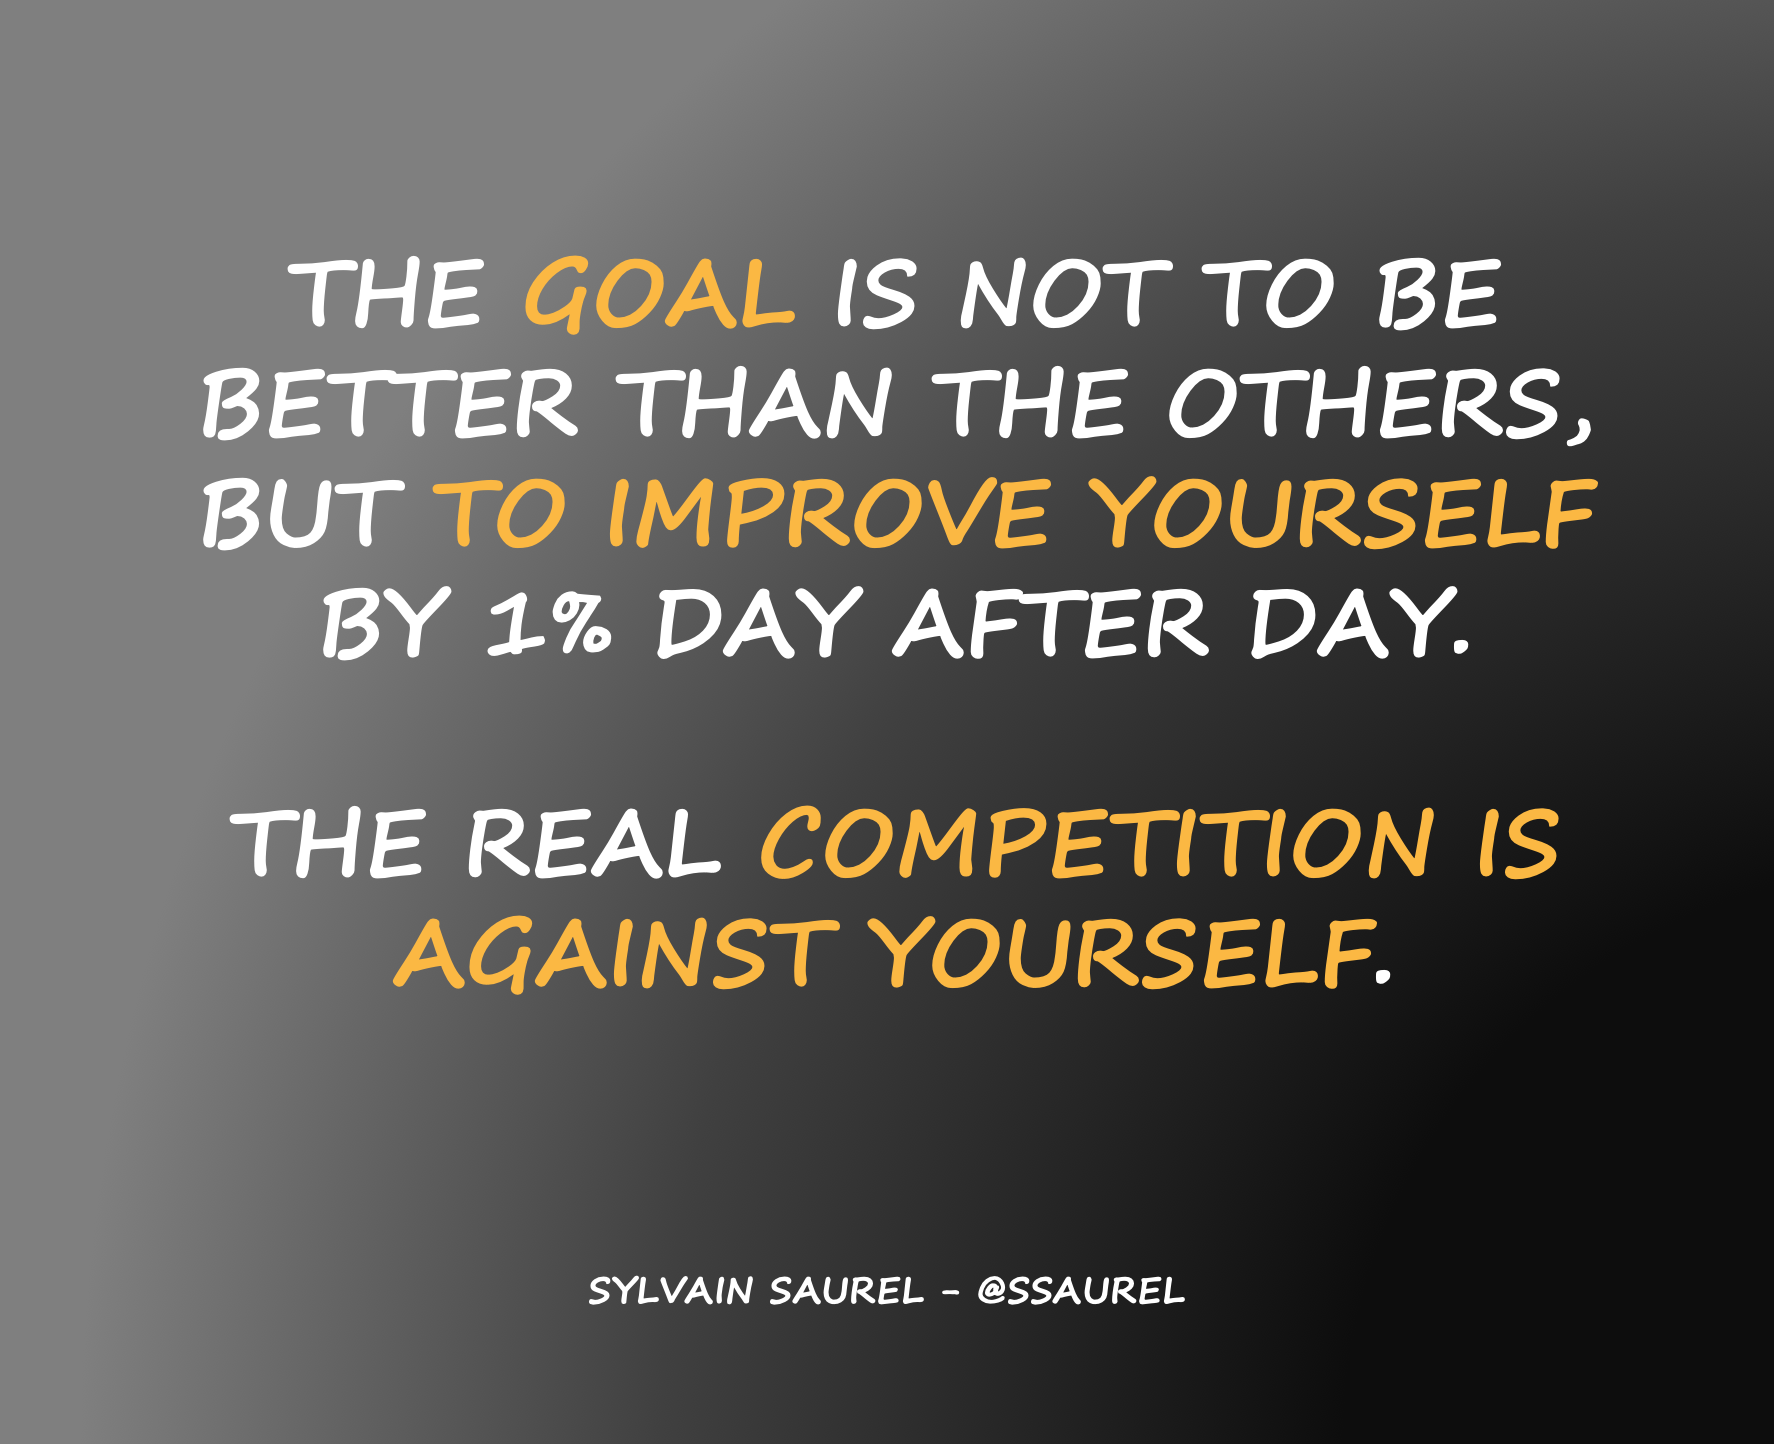 [Image] The goal is not to be better than the others but to improve yourself by 1% day after day. The real competition is against yourself.